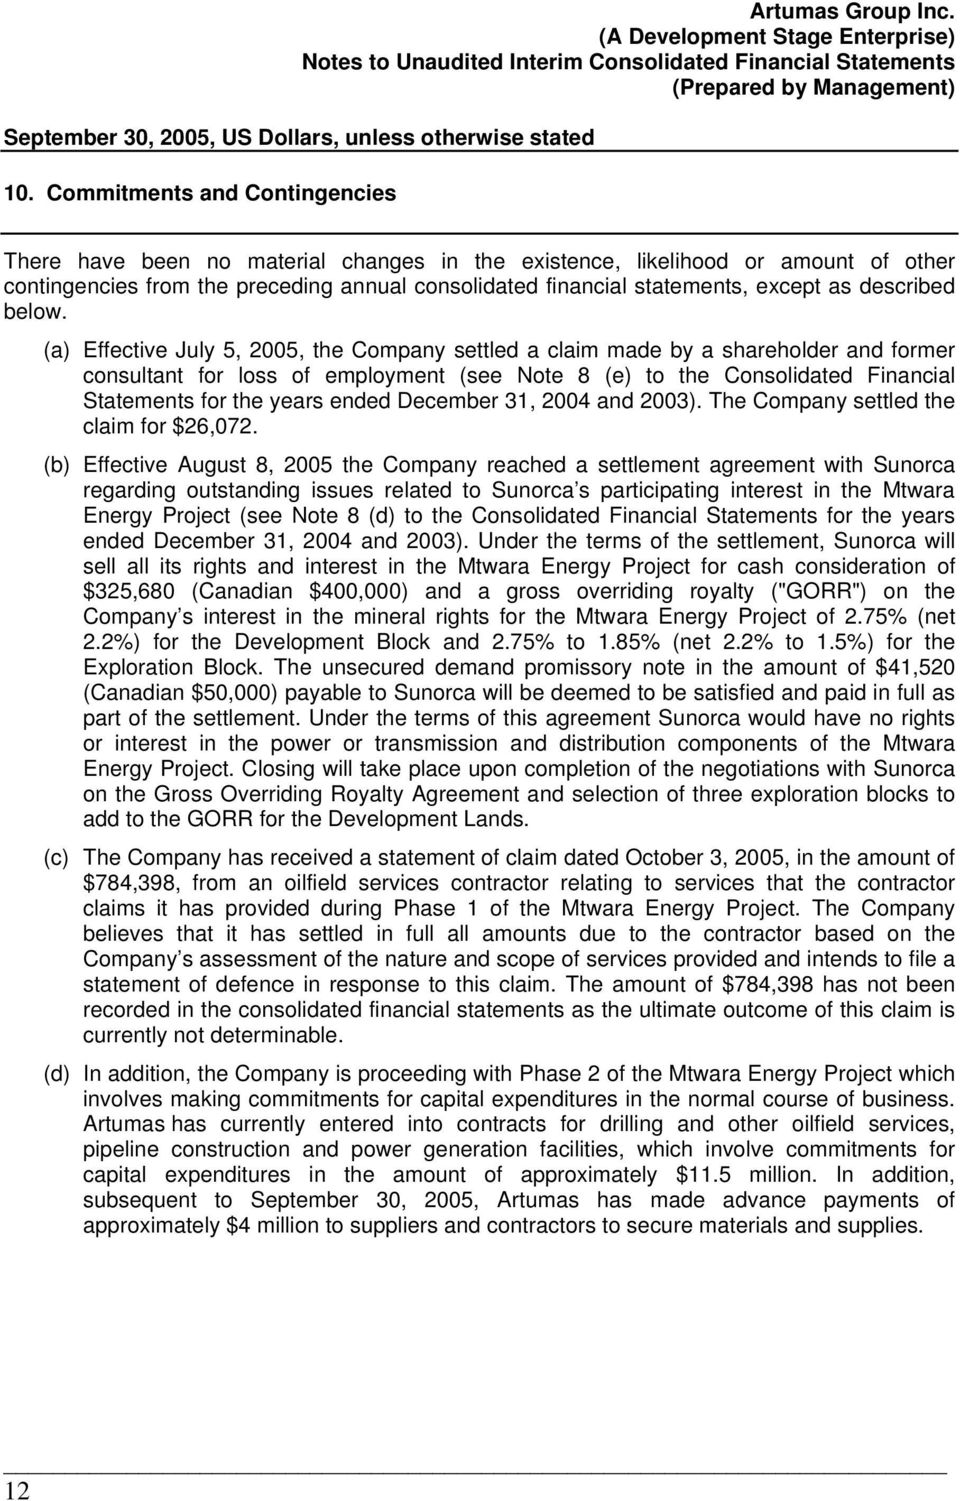 (a) Effective July 5, 2005, the Company settled a claim made by a shareholder and former consultant for loss of employment (see Note 8 (e) to the Consolidated Financial Statements for the years ended